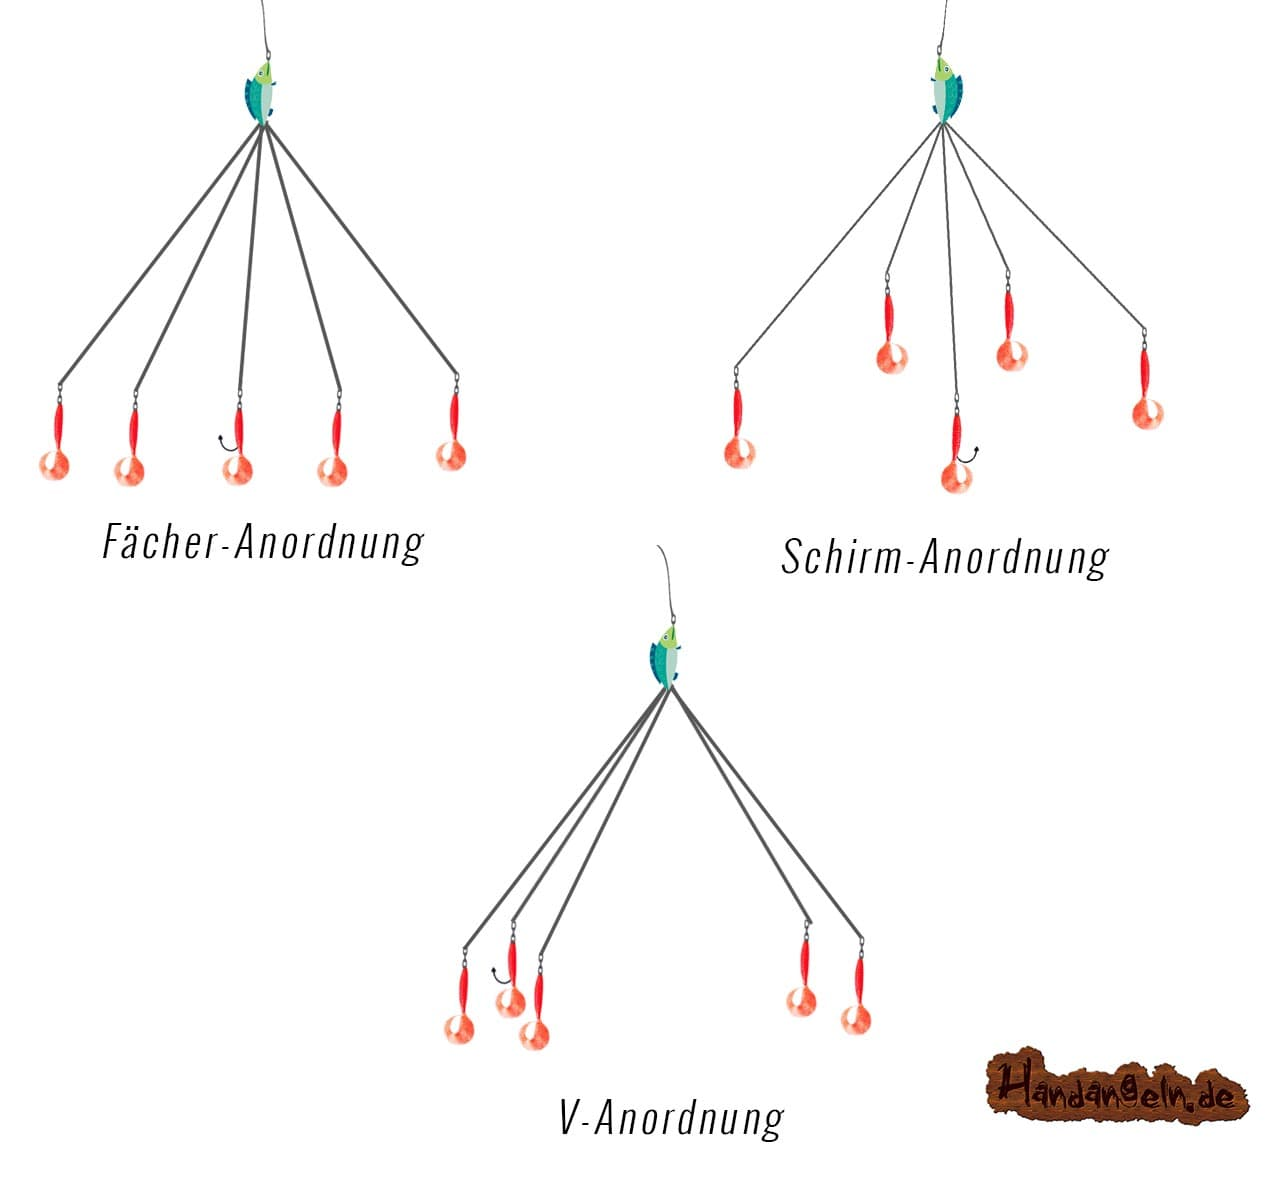 Umbrella Rig Anordnung